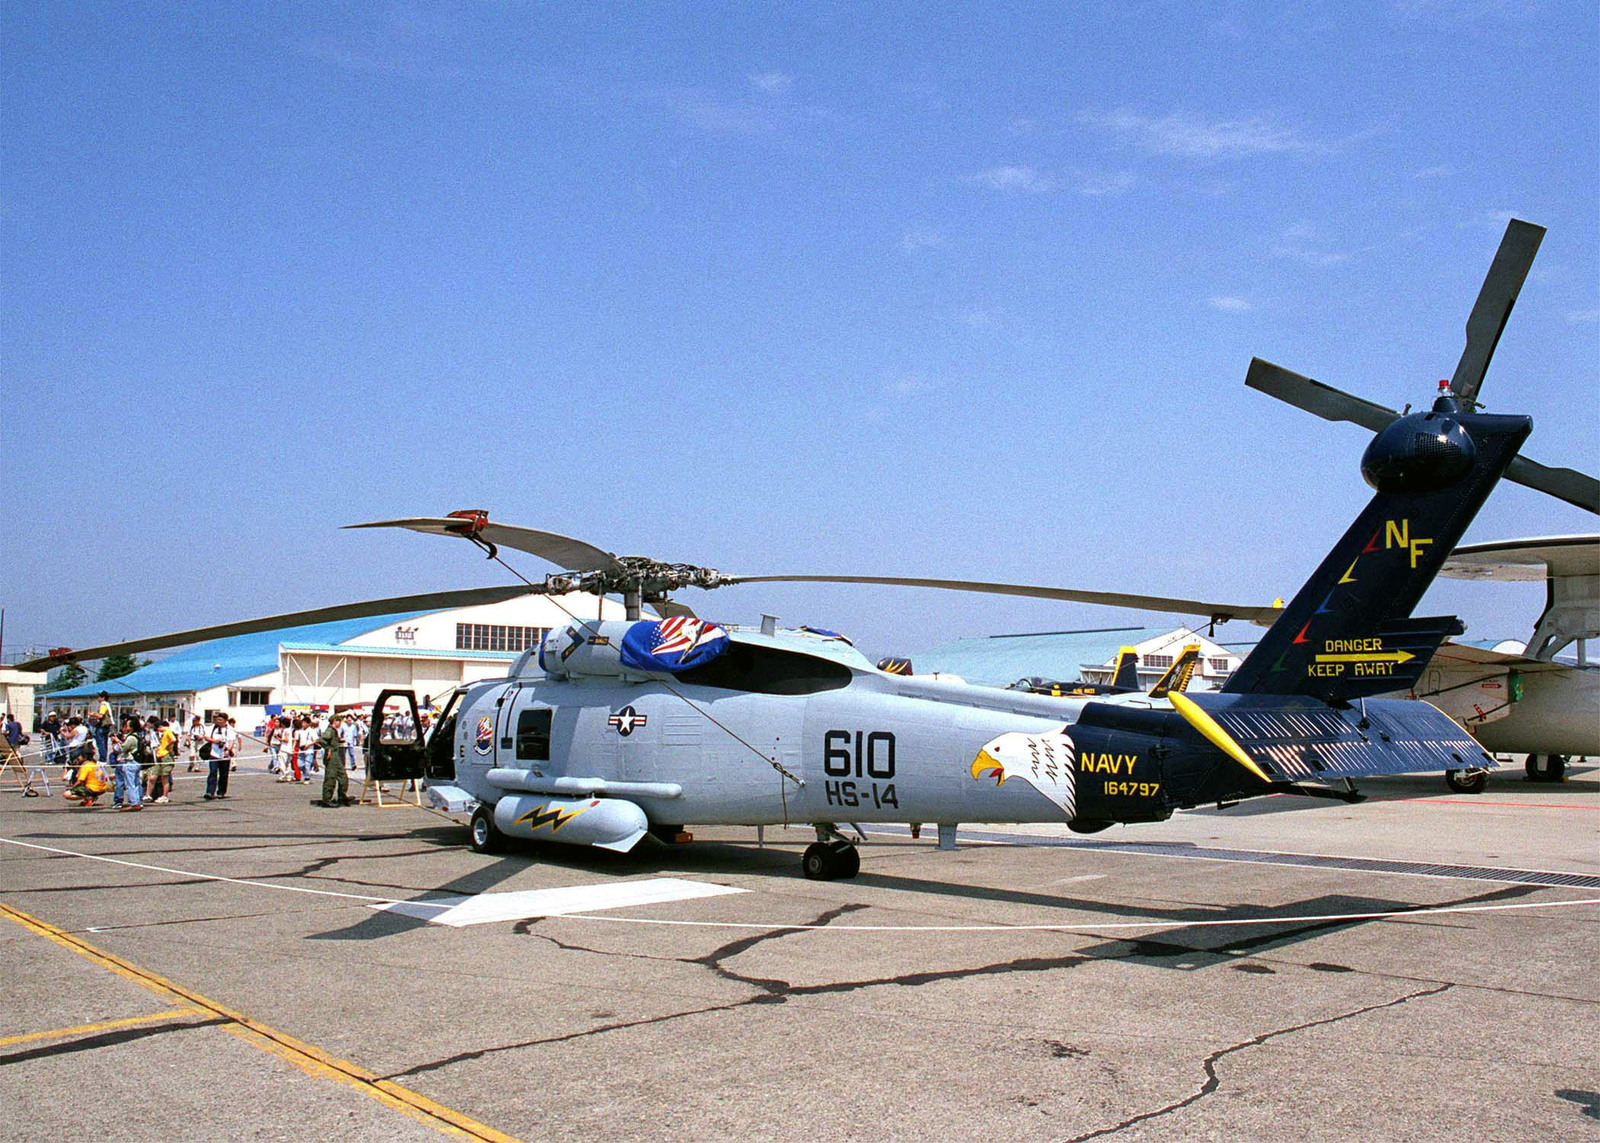 """Naval Air Facility (NAF), Atsugi, Japan, hosts the """"Wings 2000"""" Air show, featuring various static displays such as this SH-60 """"Sea Hawk'' assigned to the """"Chargers"""" attached to Helo Anti-Submarine Squadron One Four (HS-14)"""